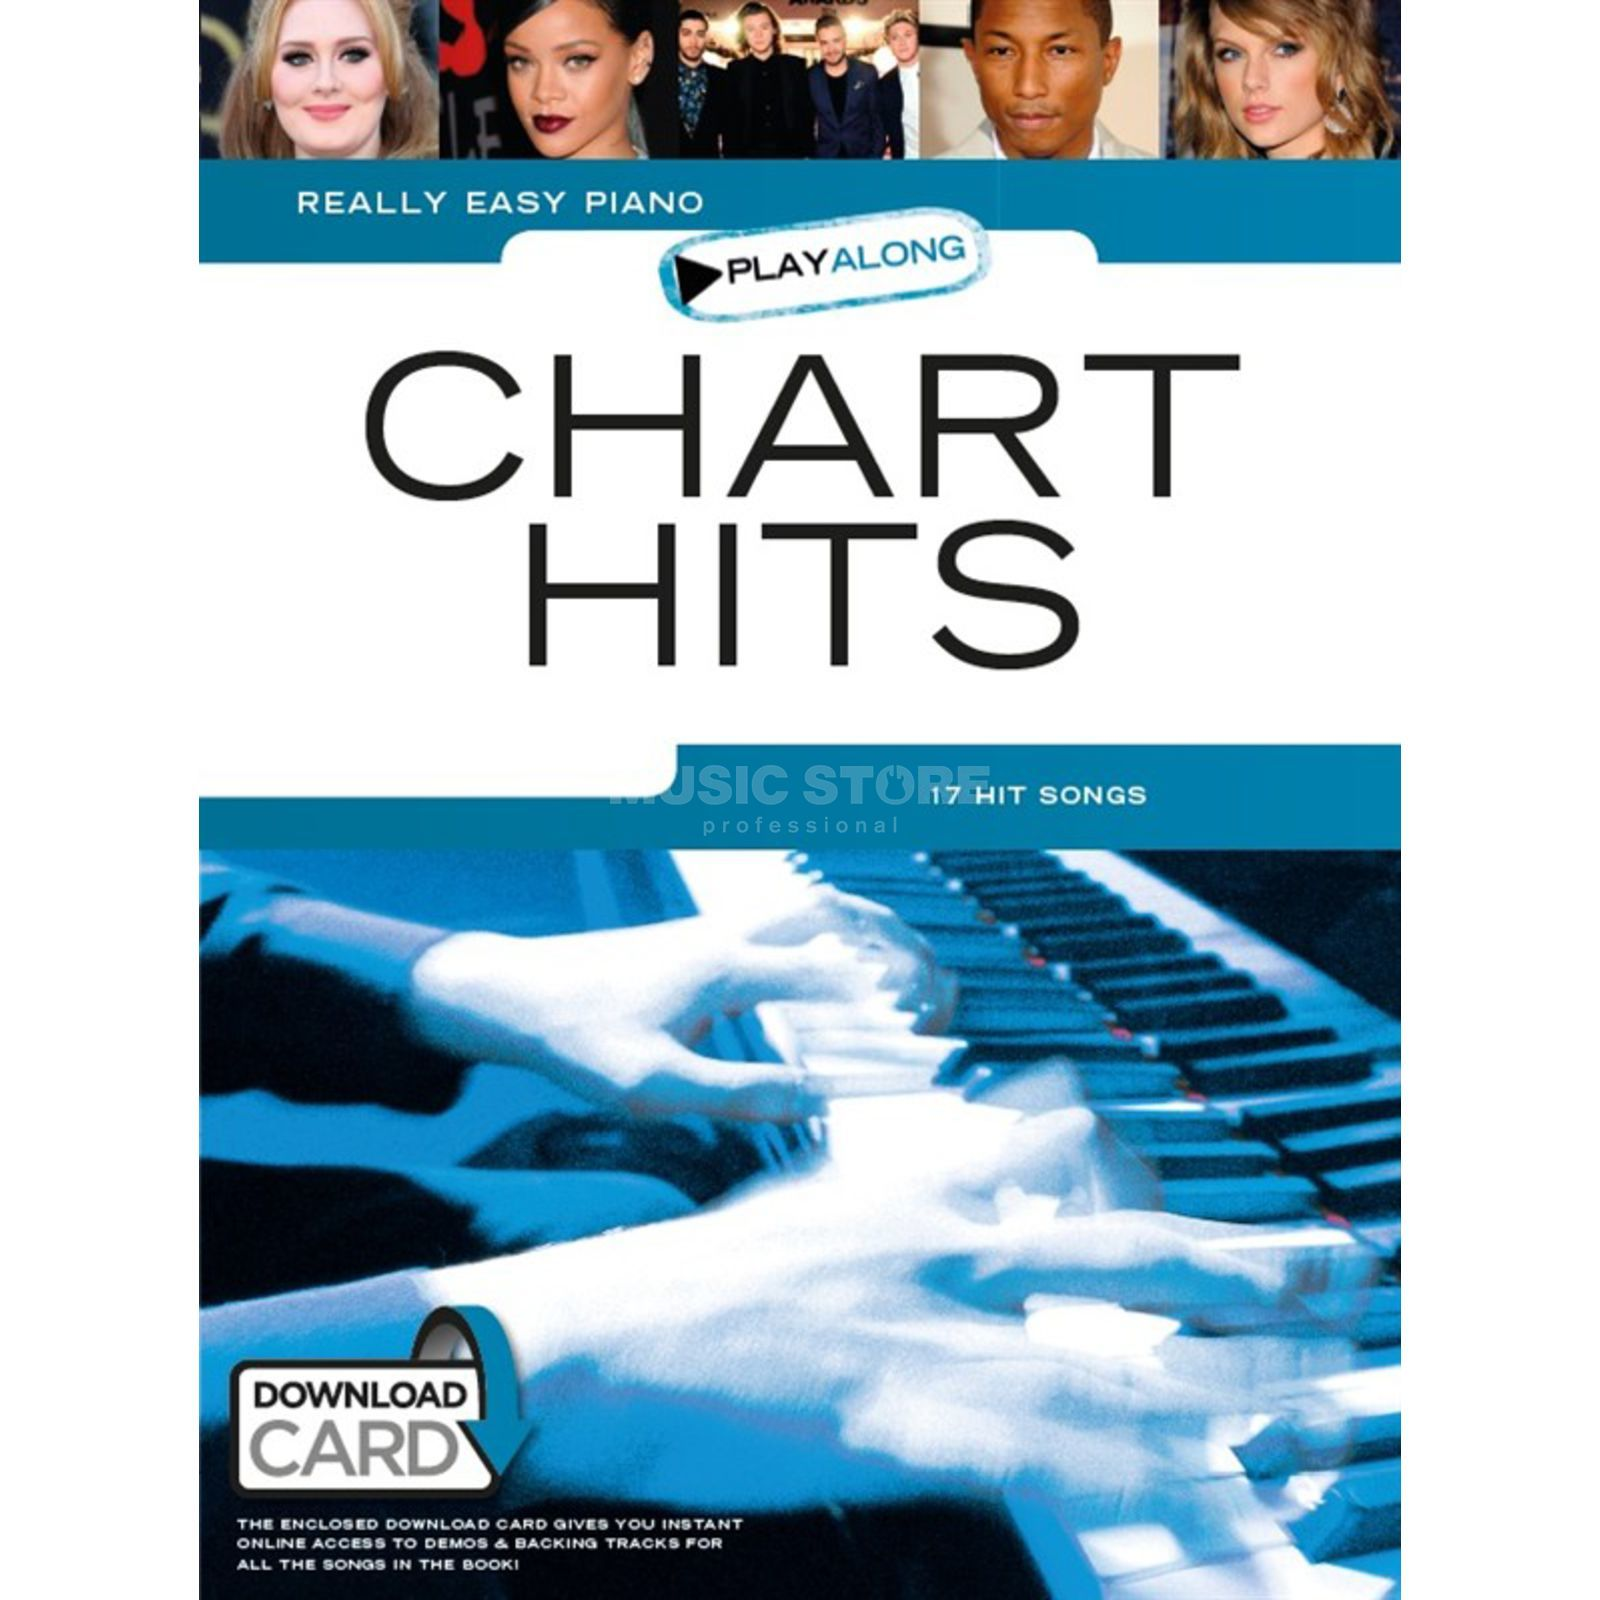 Wise Publications Really Easy Piano Playalong: Chart Hits Produktbild